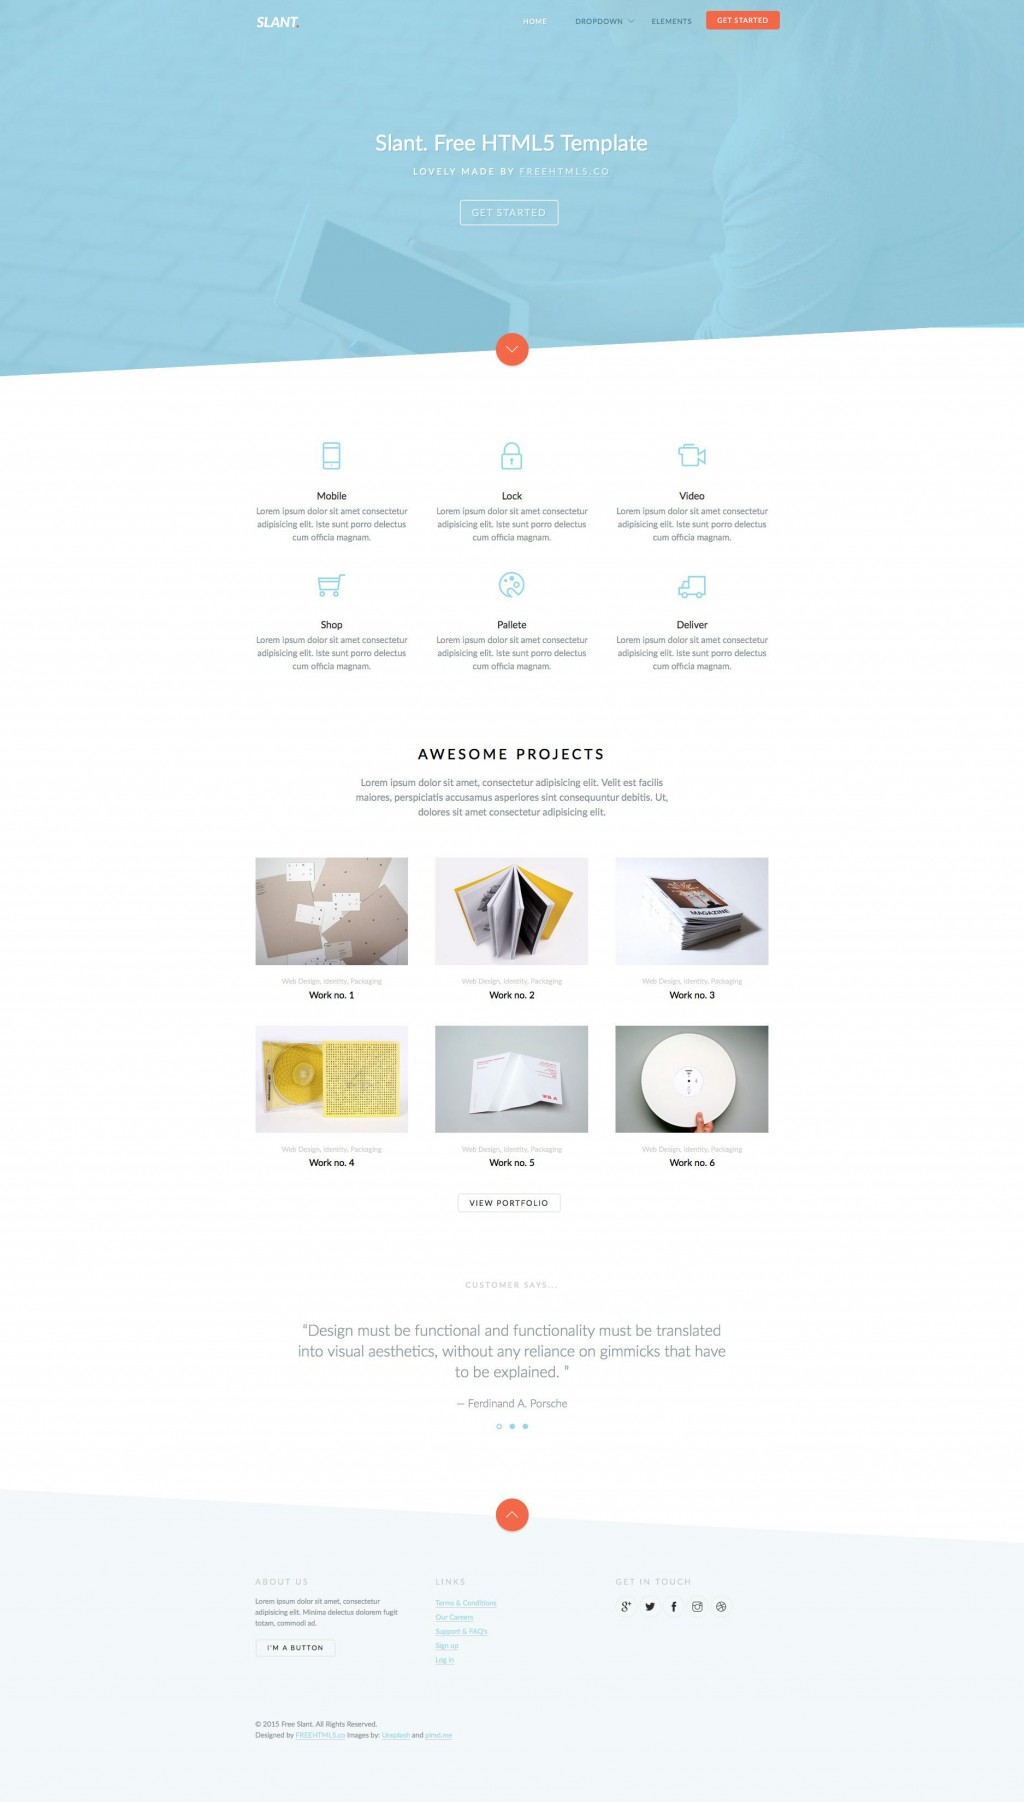 010 Archaicawful Free Website Template Download Html And Cs Jquery Bootstrap Image Large